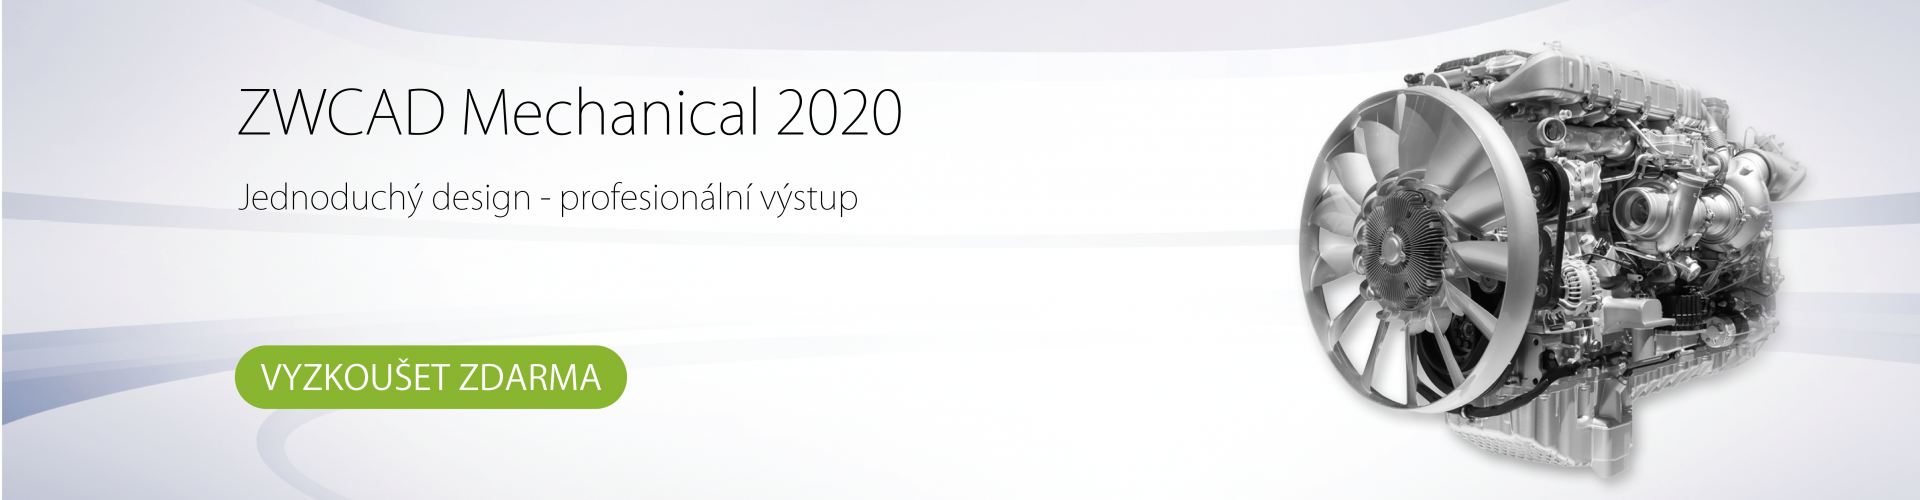 mechanical 2020